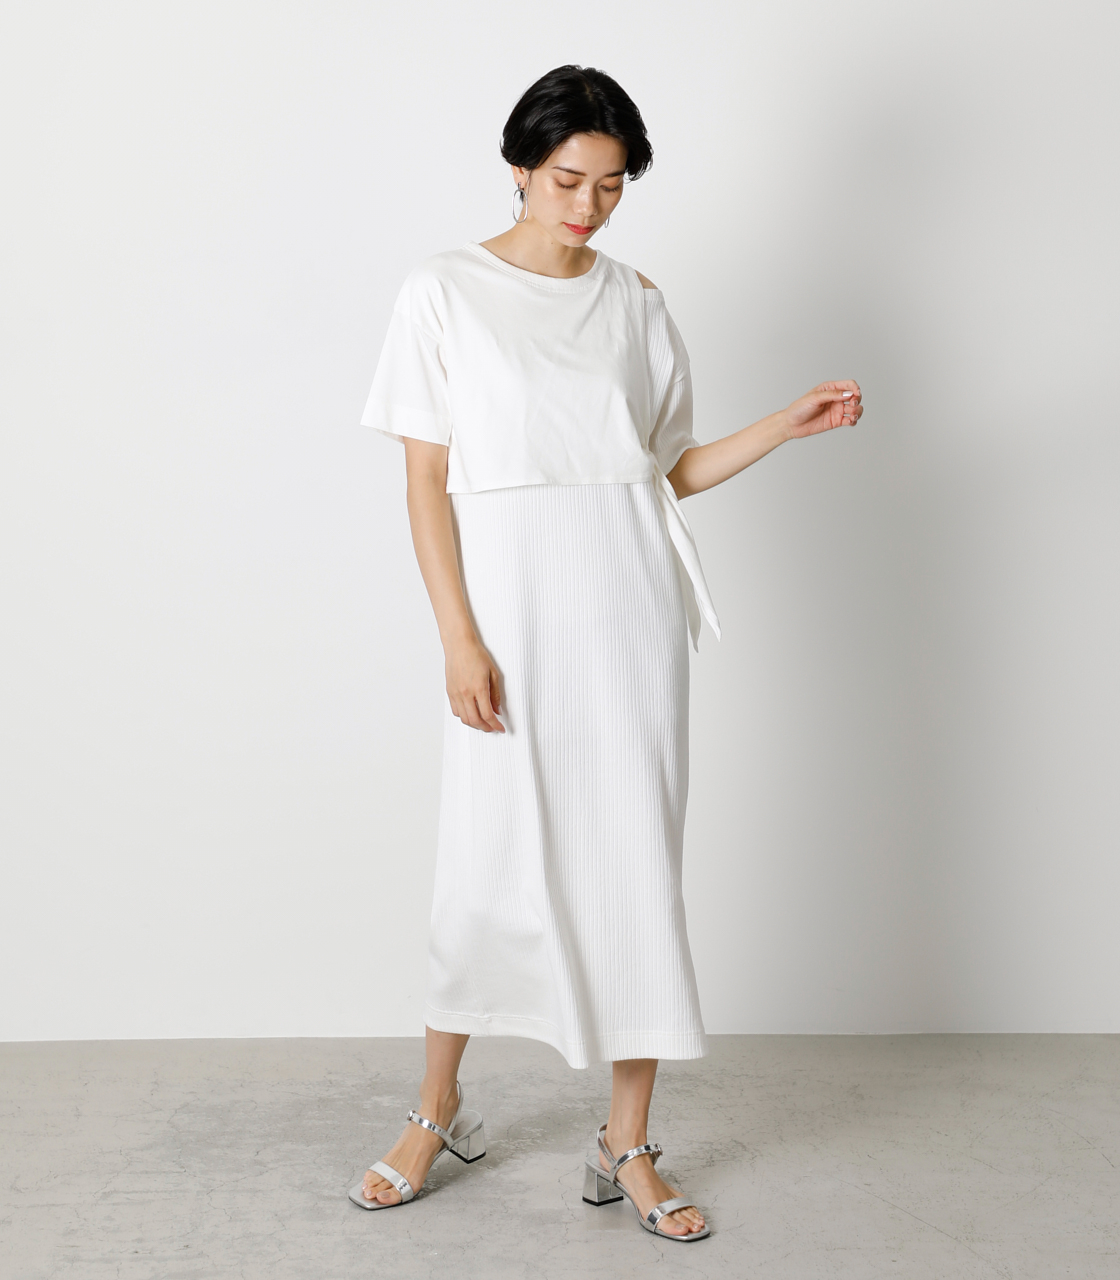 FRONT LINK ONEPIECE/フロントリンクワンピース 詳細画像 O/WHT 1